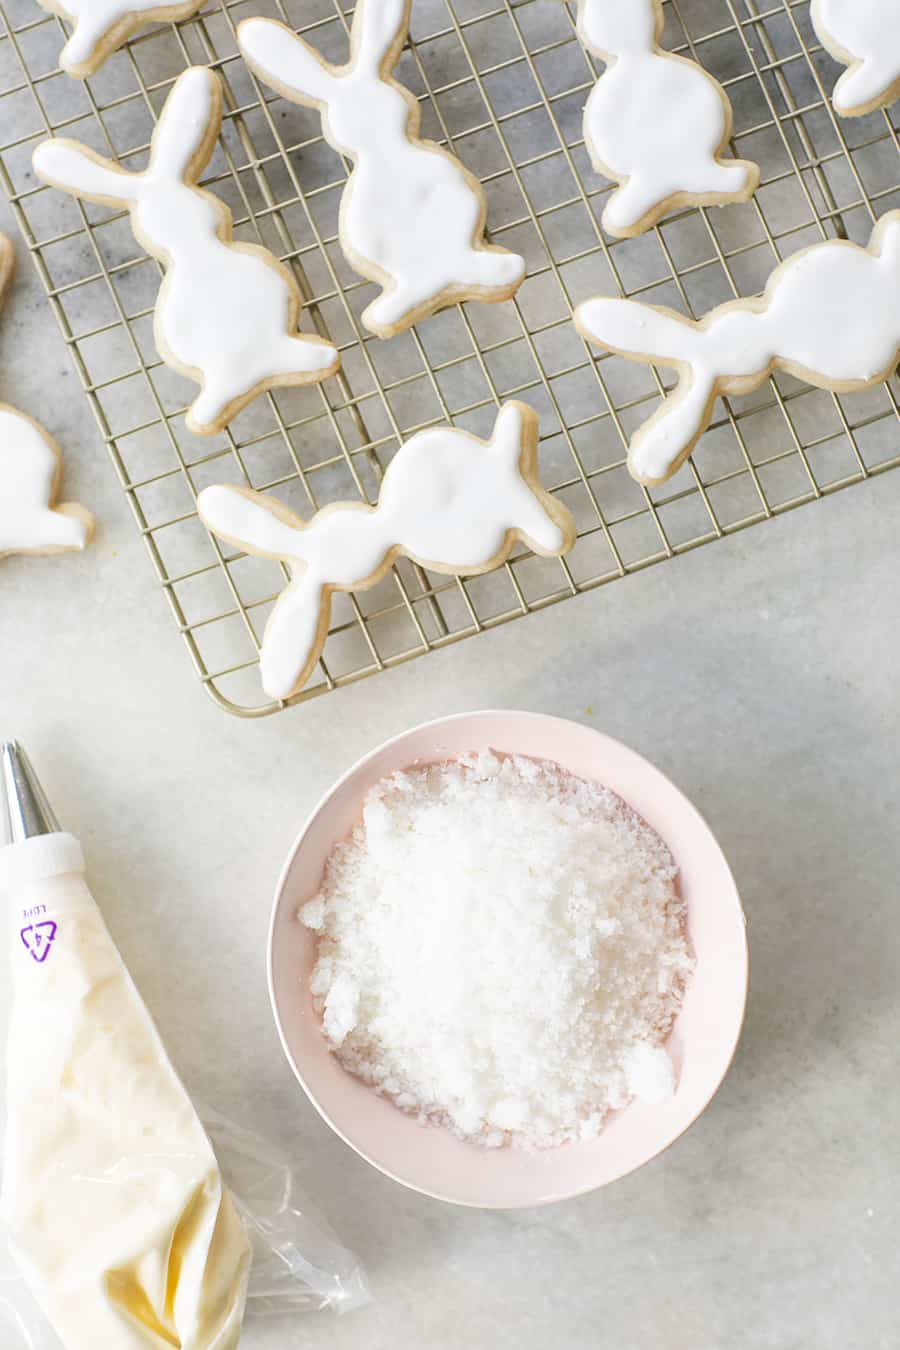 Easter cookies shaped as bunnies on a cooling rack with a bowl of coconut.